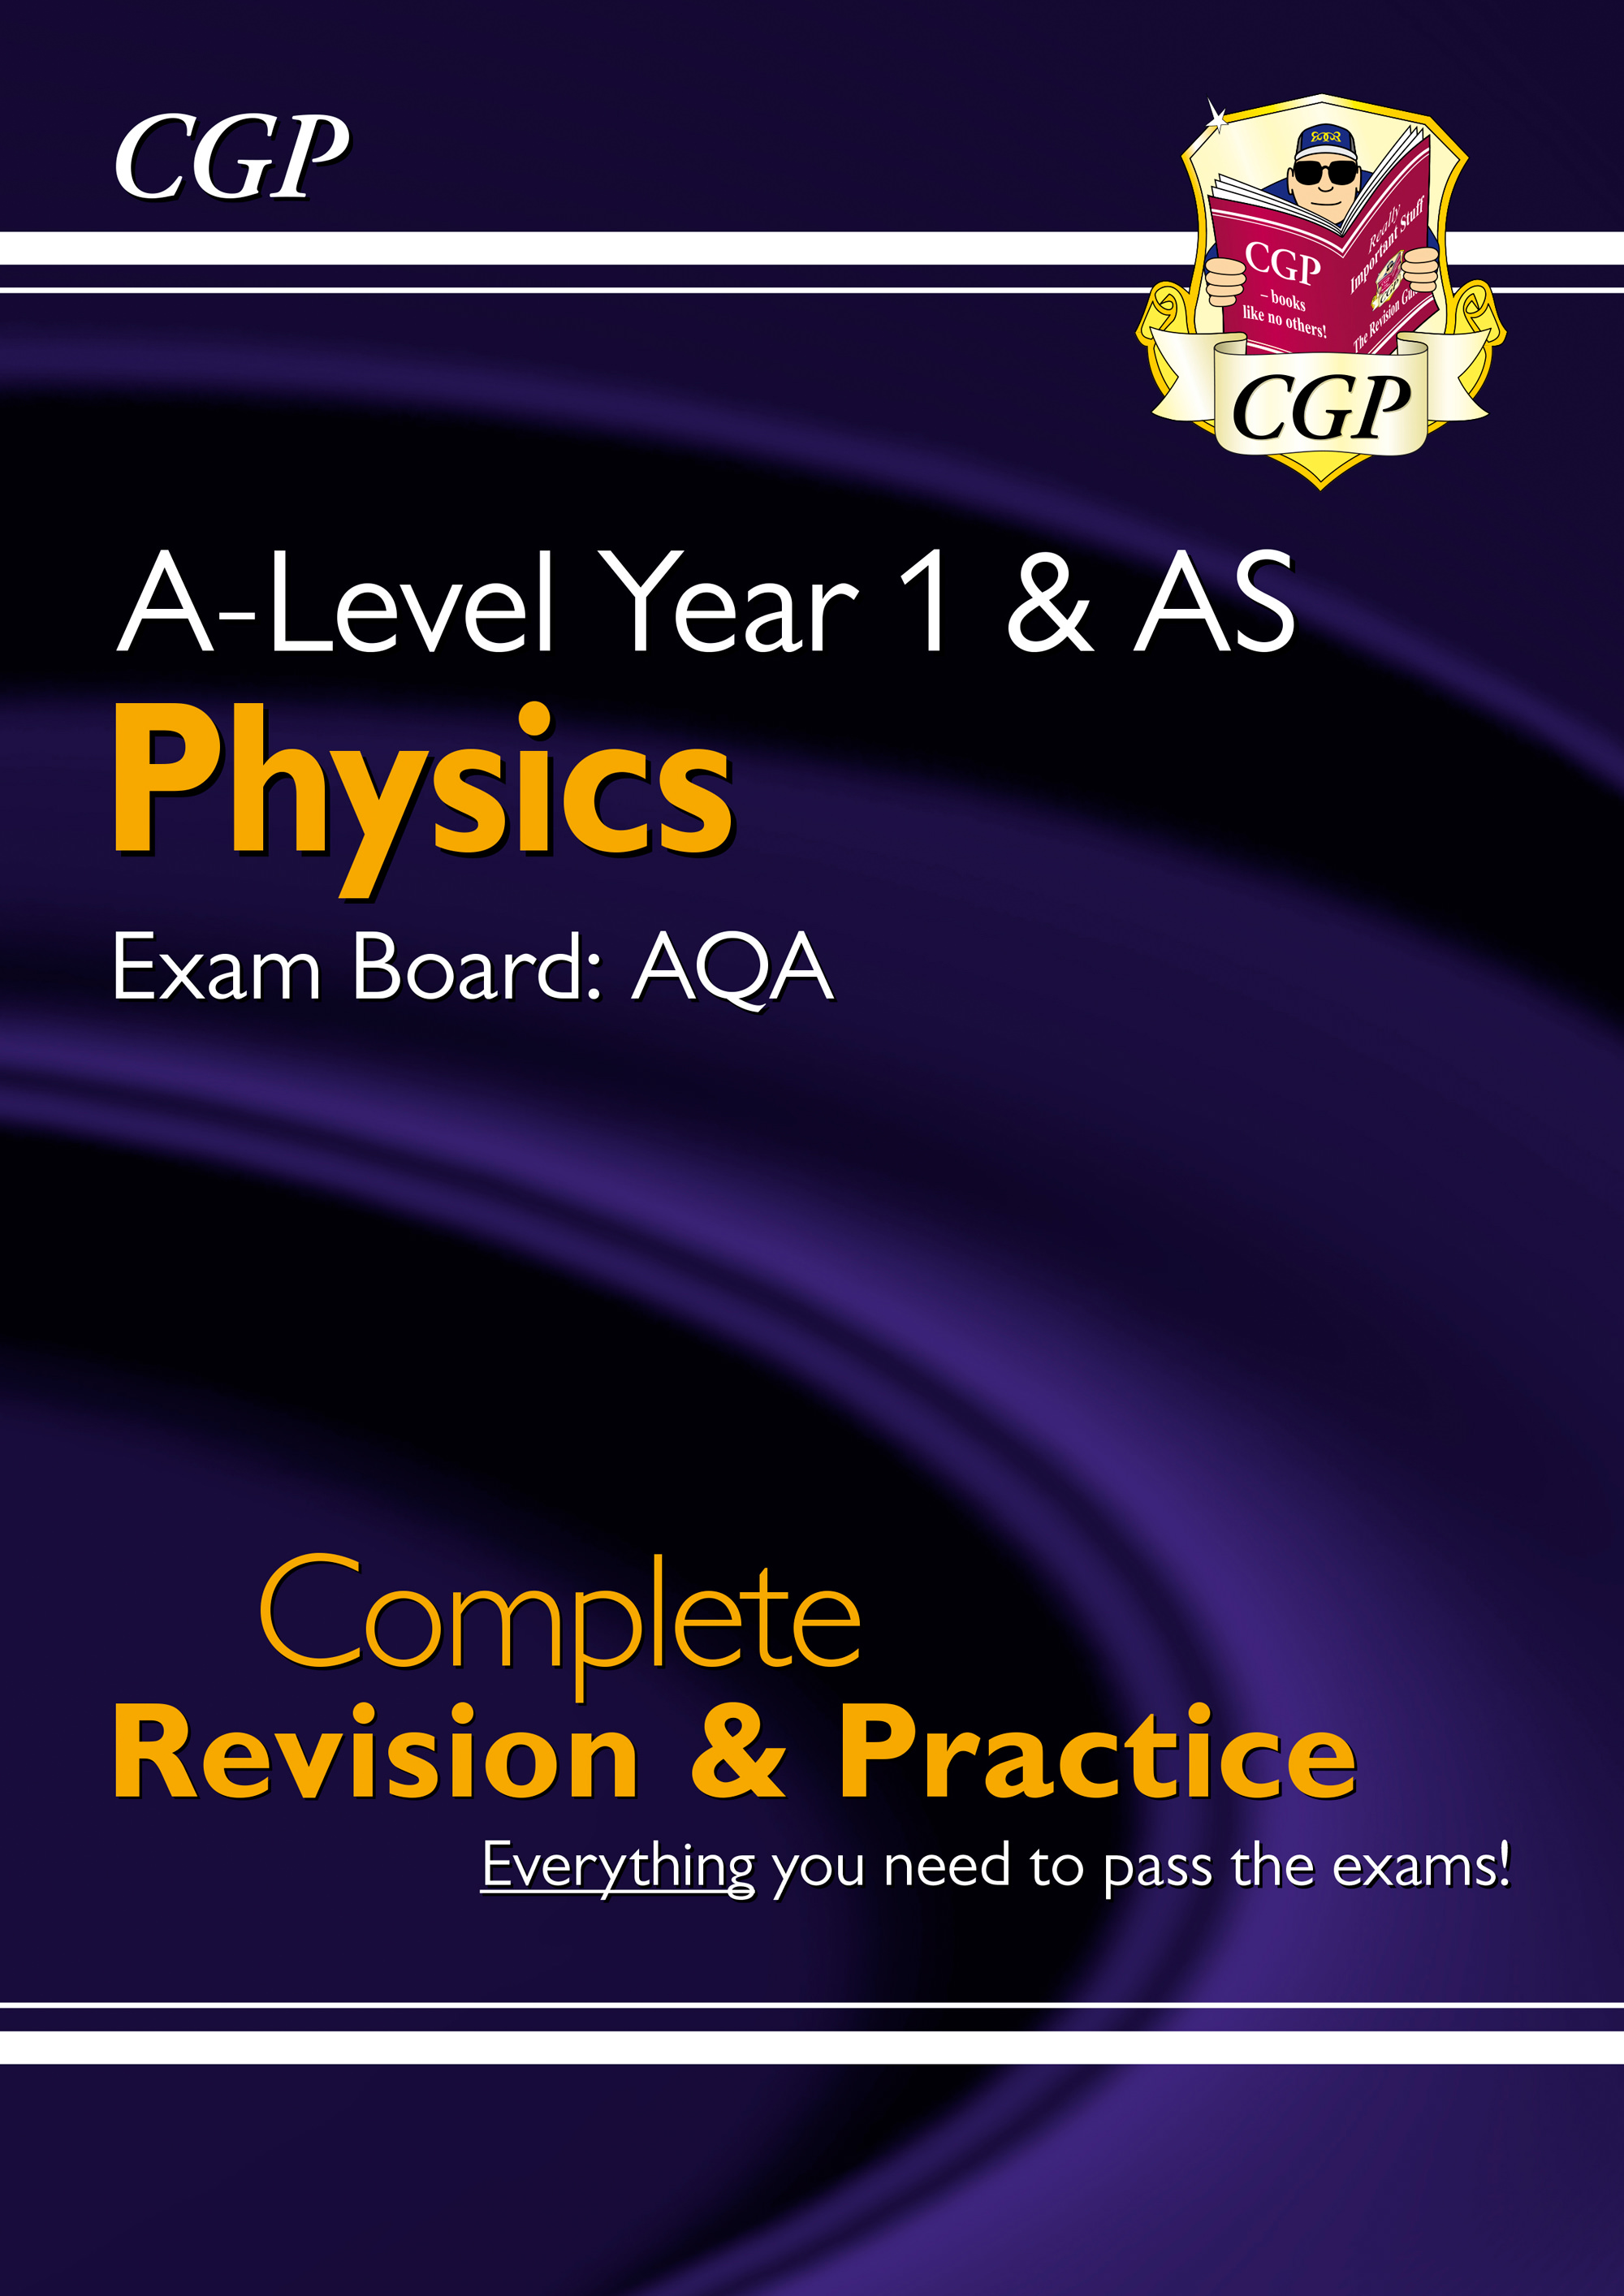 PAR54DK - New A-Level Physics: AQA Year 1 & AS Complete Revision & Practice